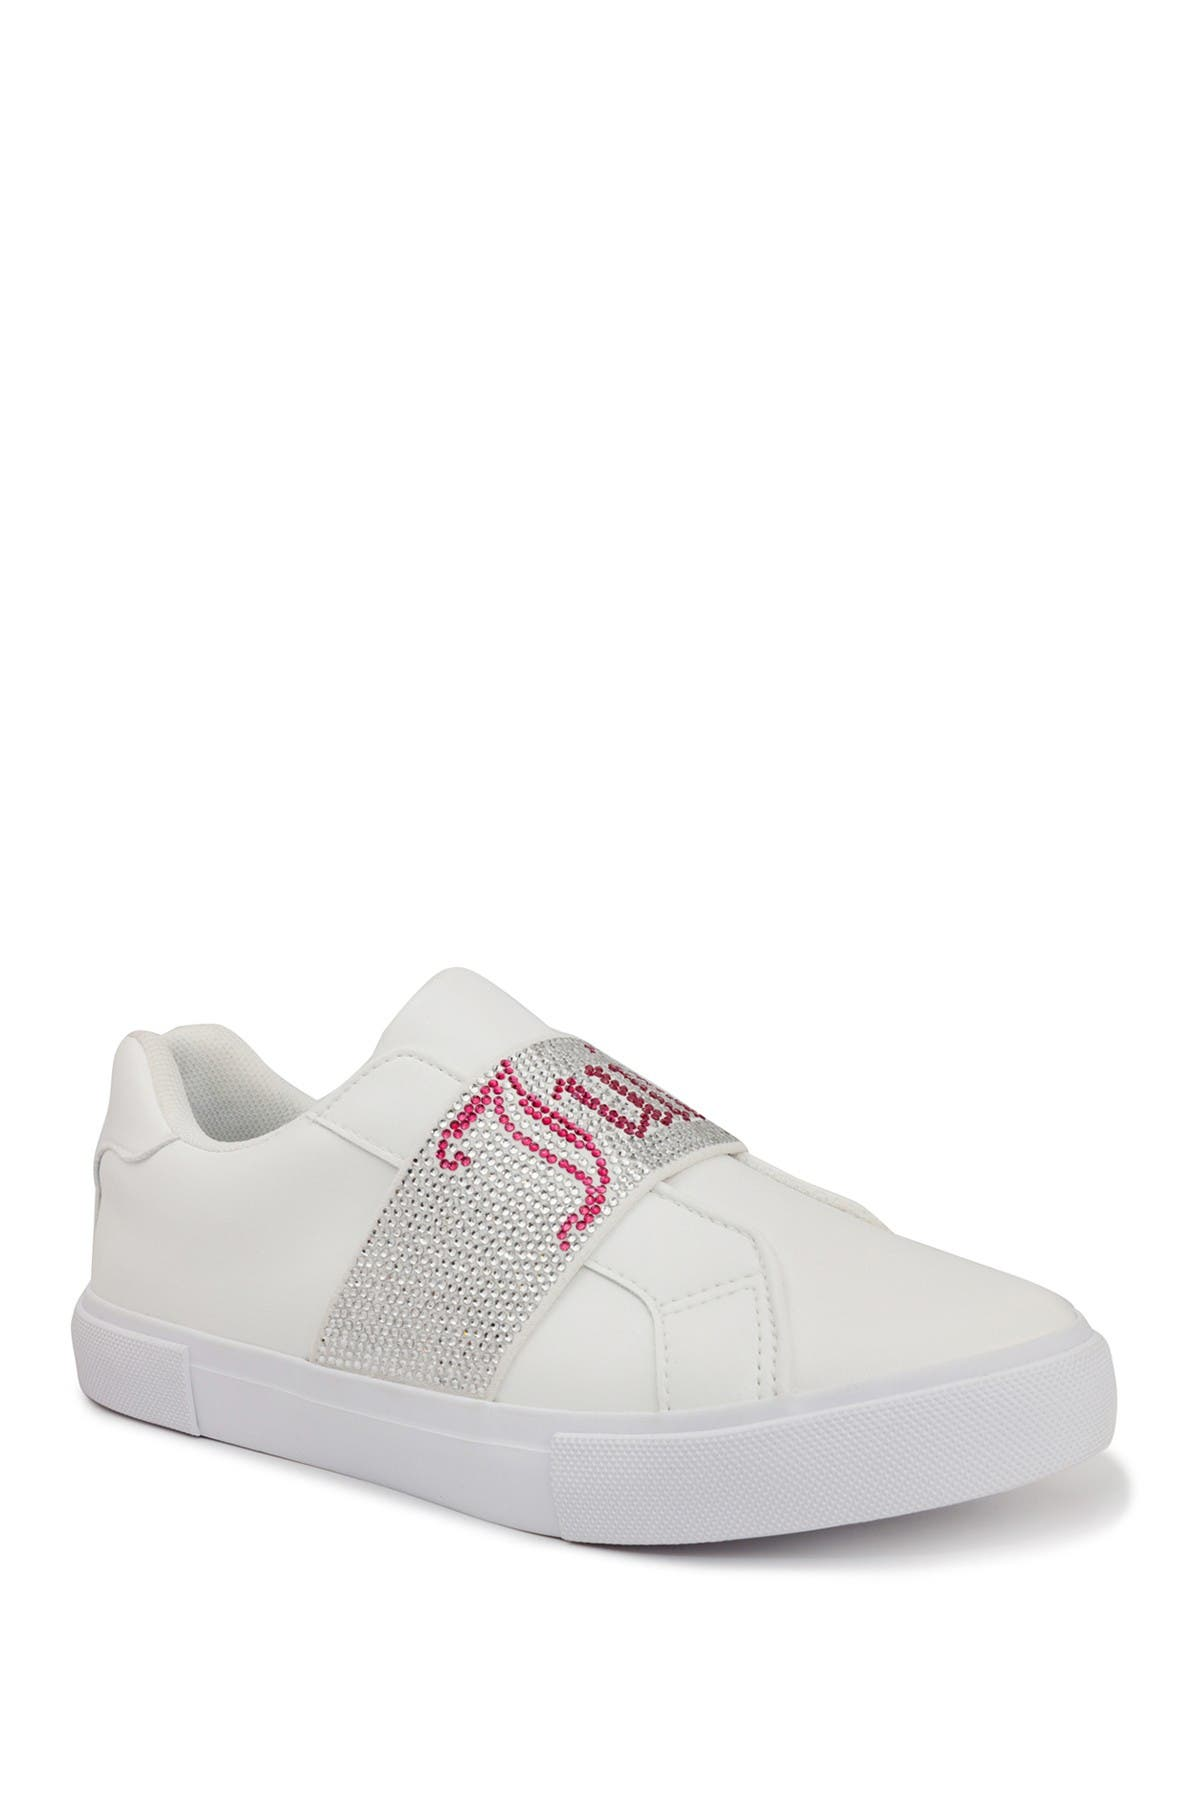 Image of Juicy Couture Cosmik Fashion Sneaker